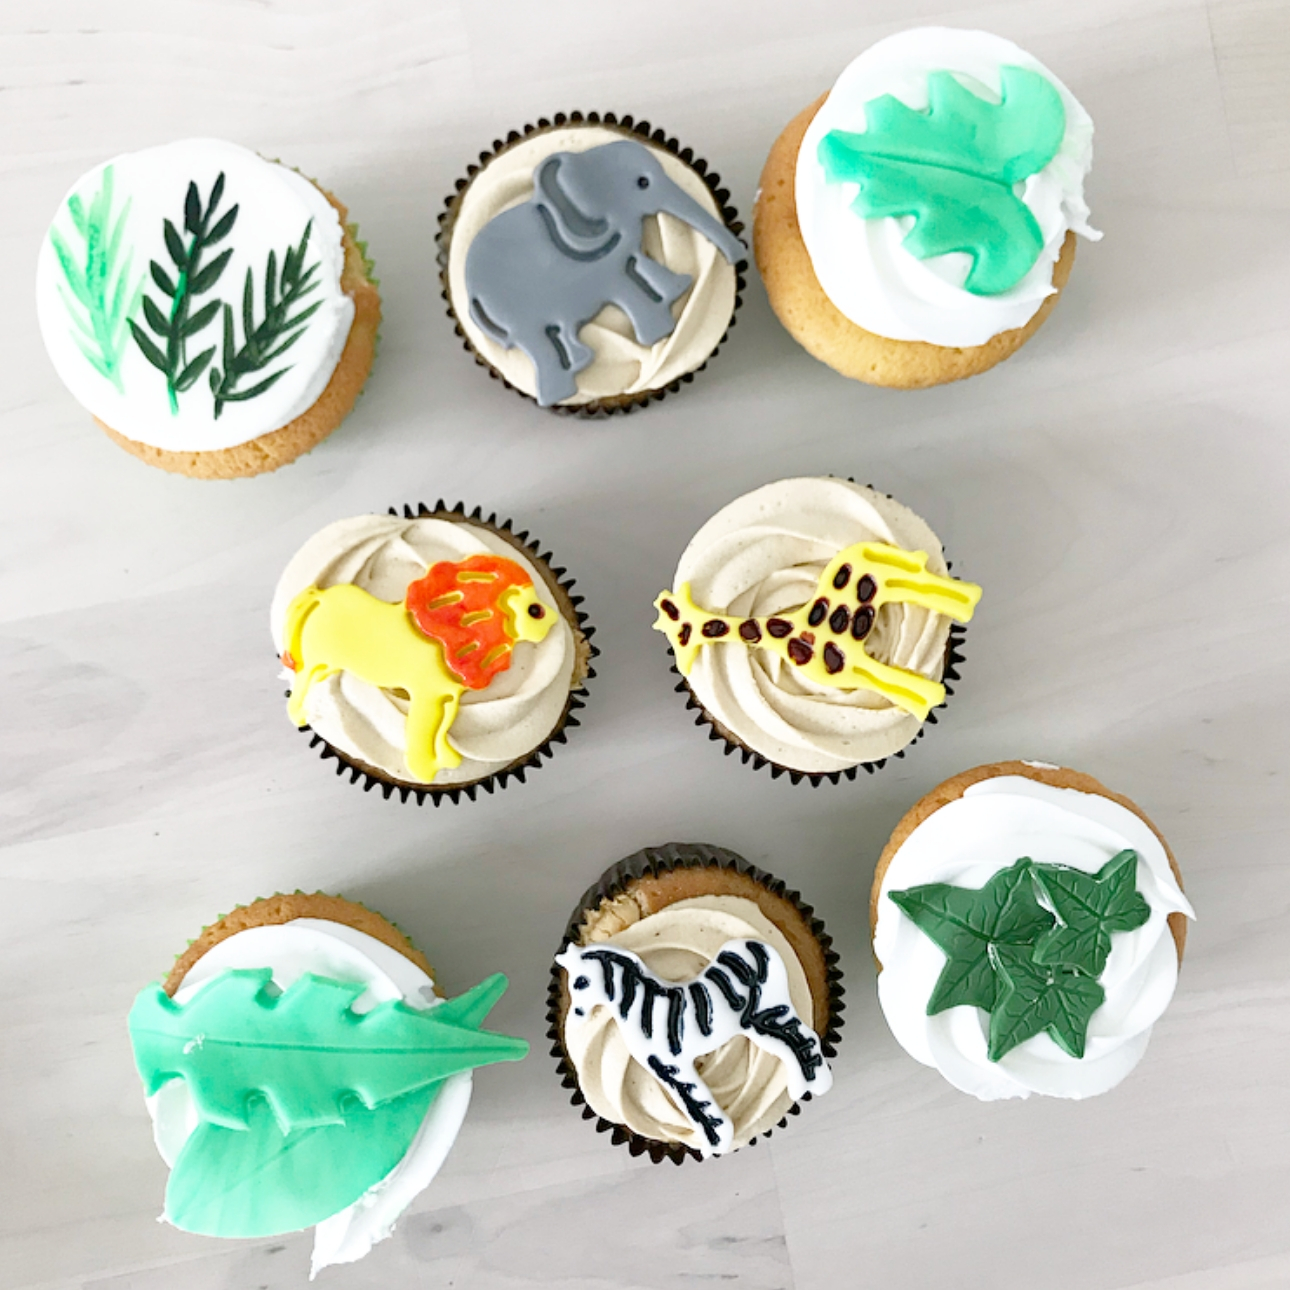 one wild year jungle party dieren cupcakes groen